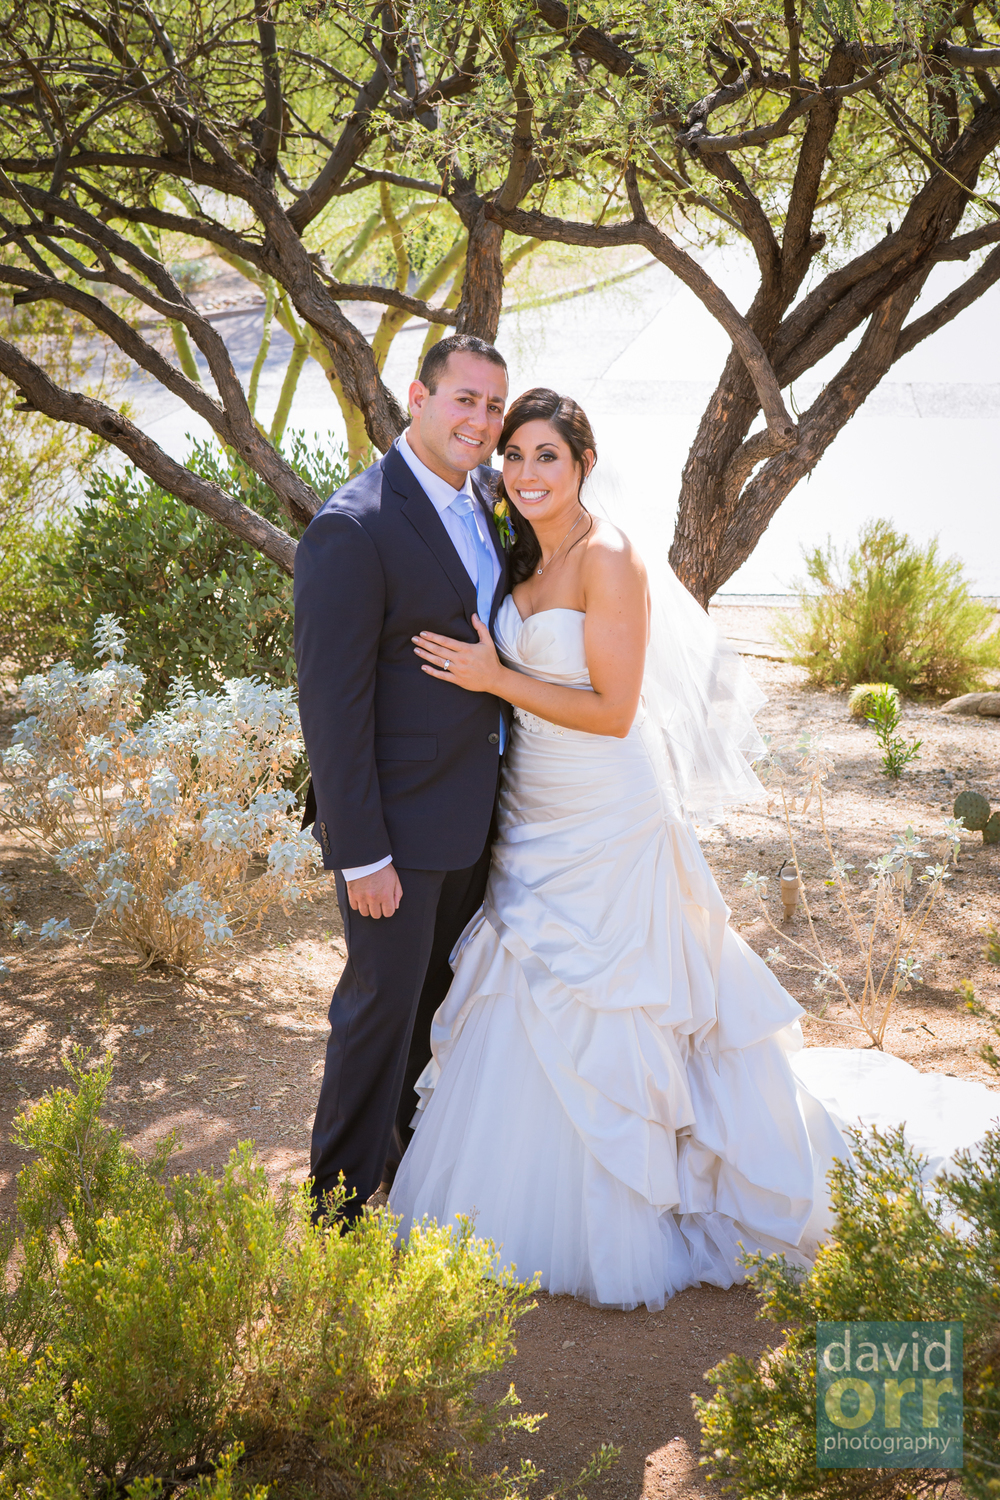 hillary and andrews wedding at four seasons resort